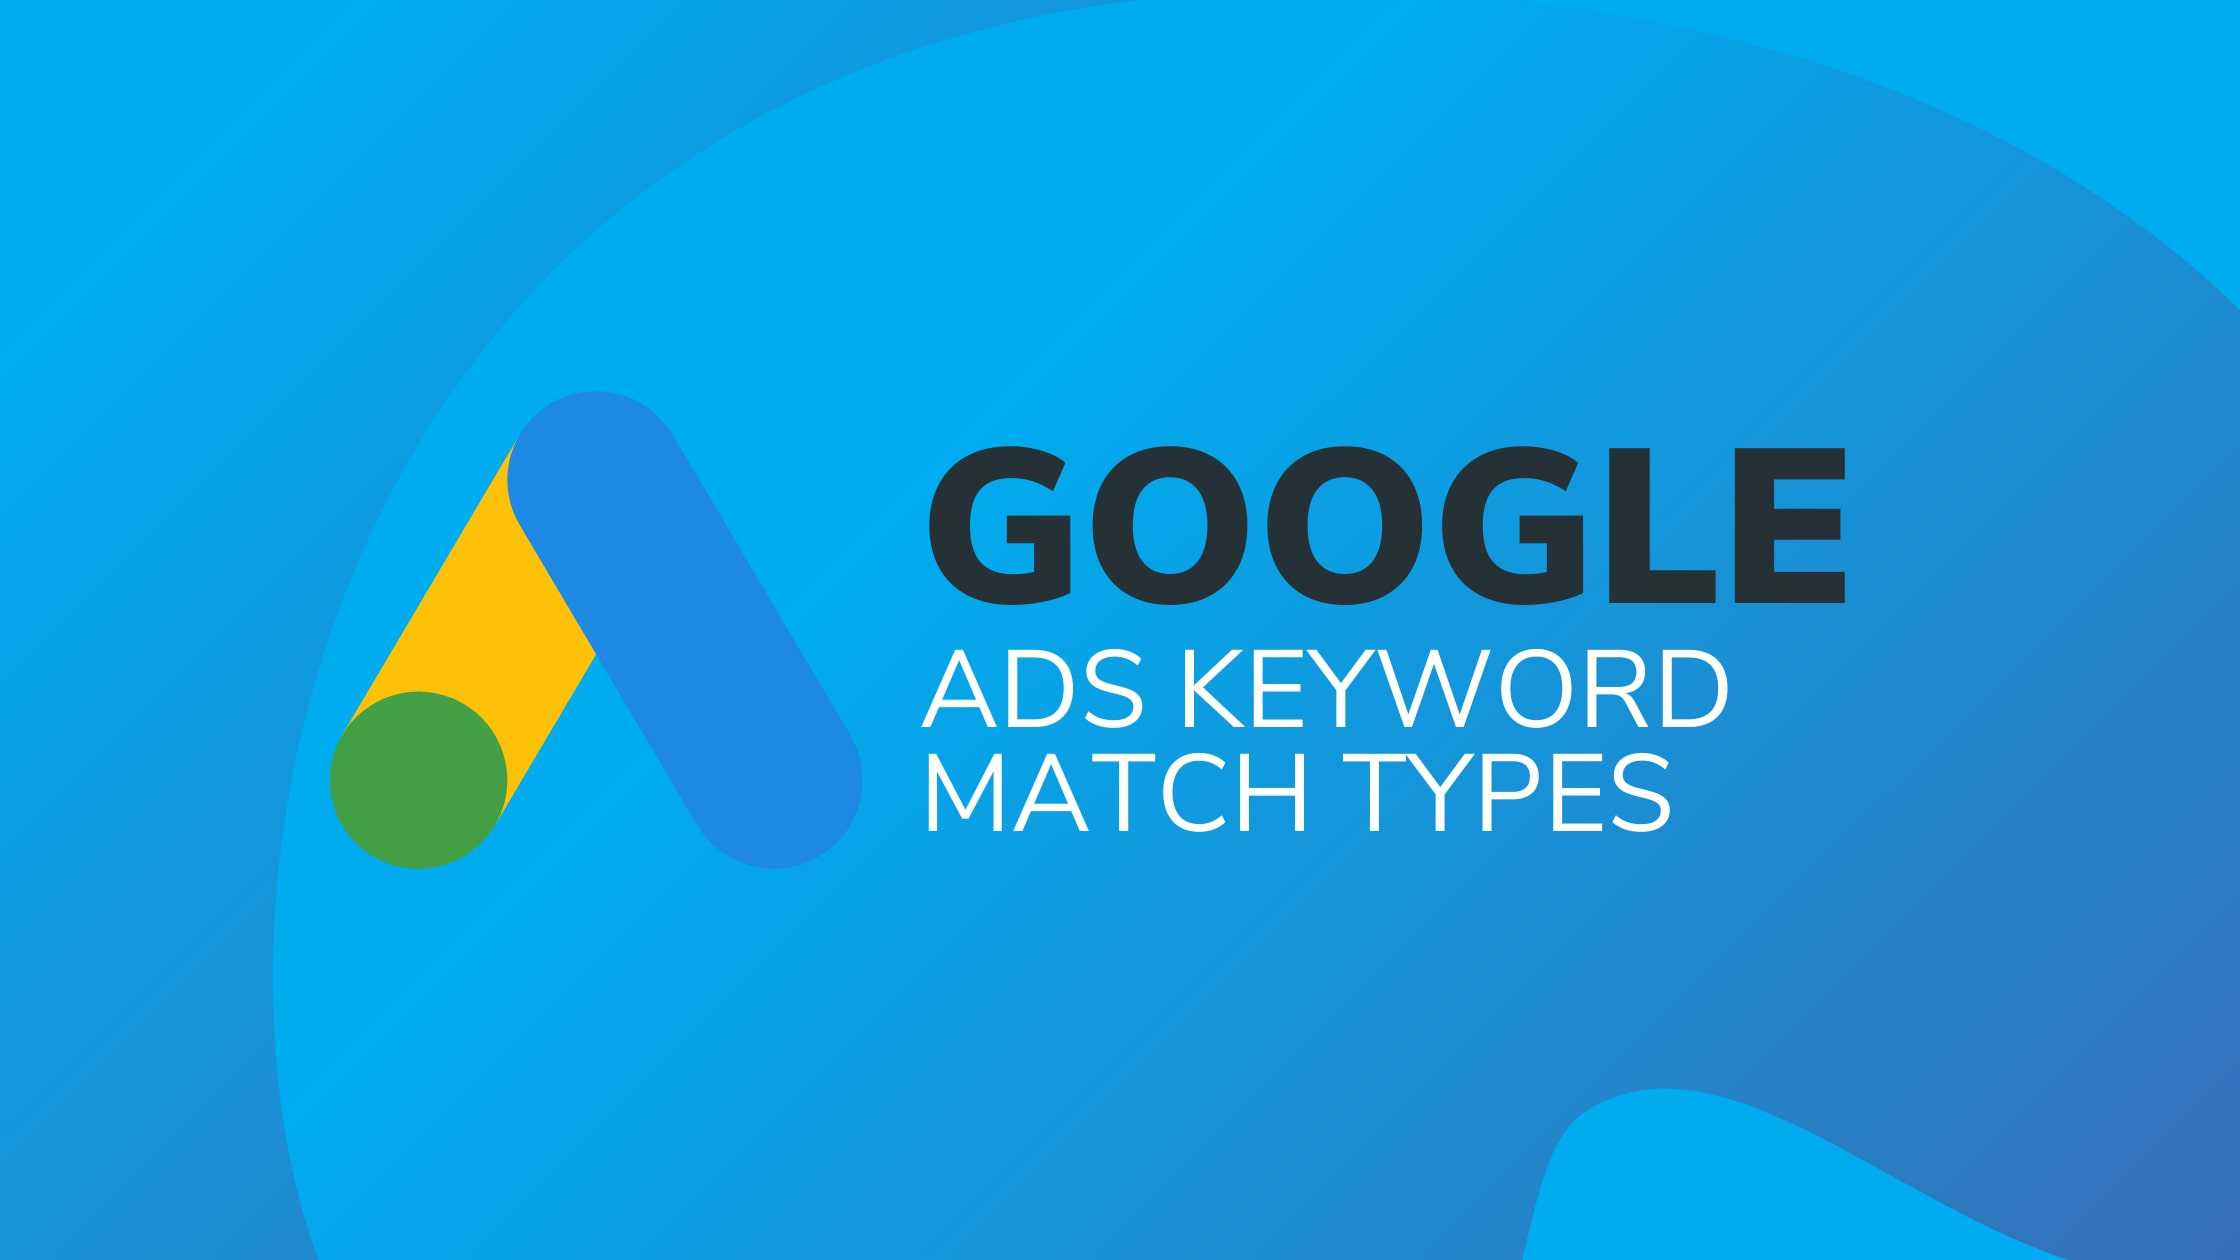 GOOGLE ADS KEYWORD MATCH TYPES_ GET TO KNOW THE DIFFERENCES